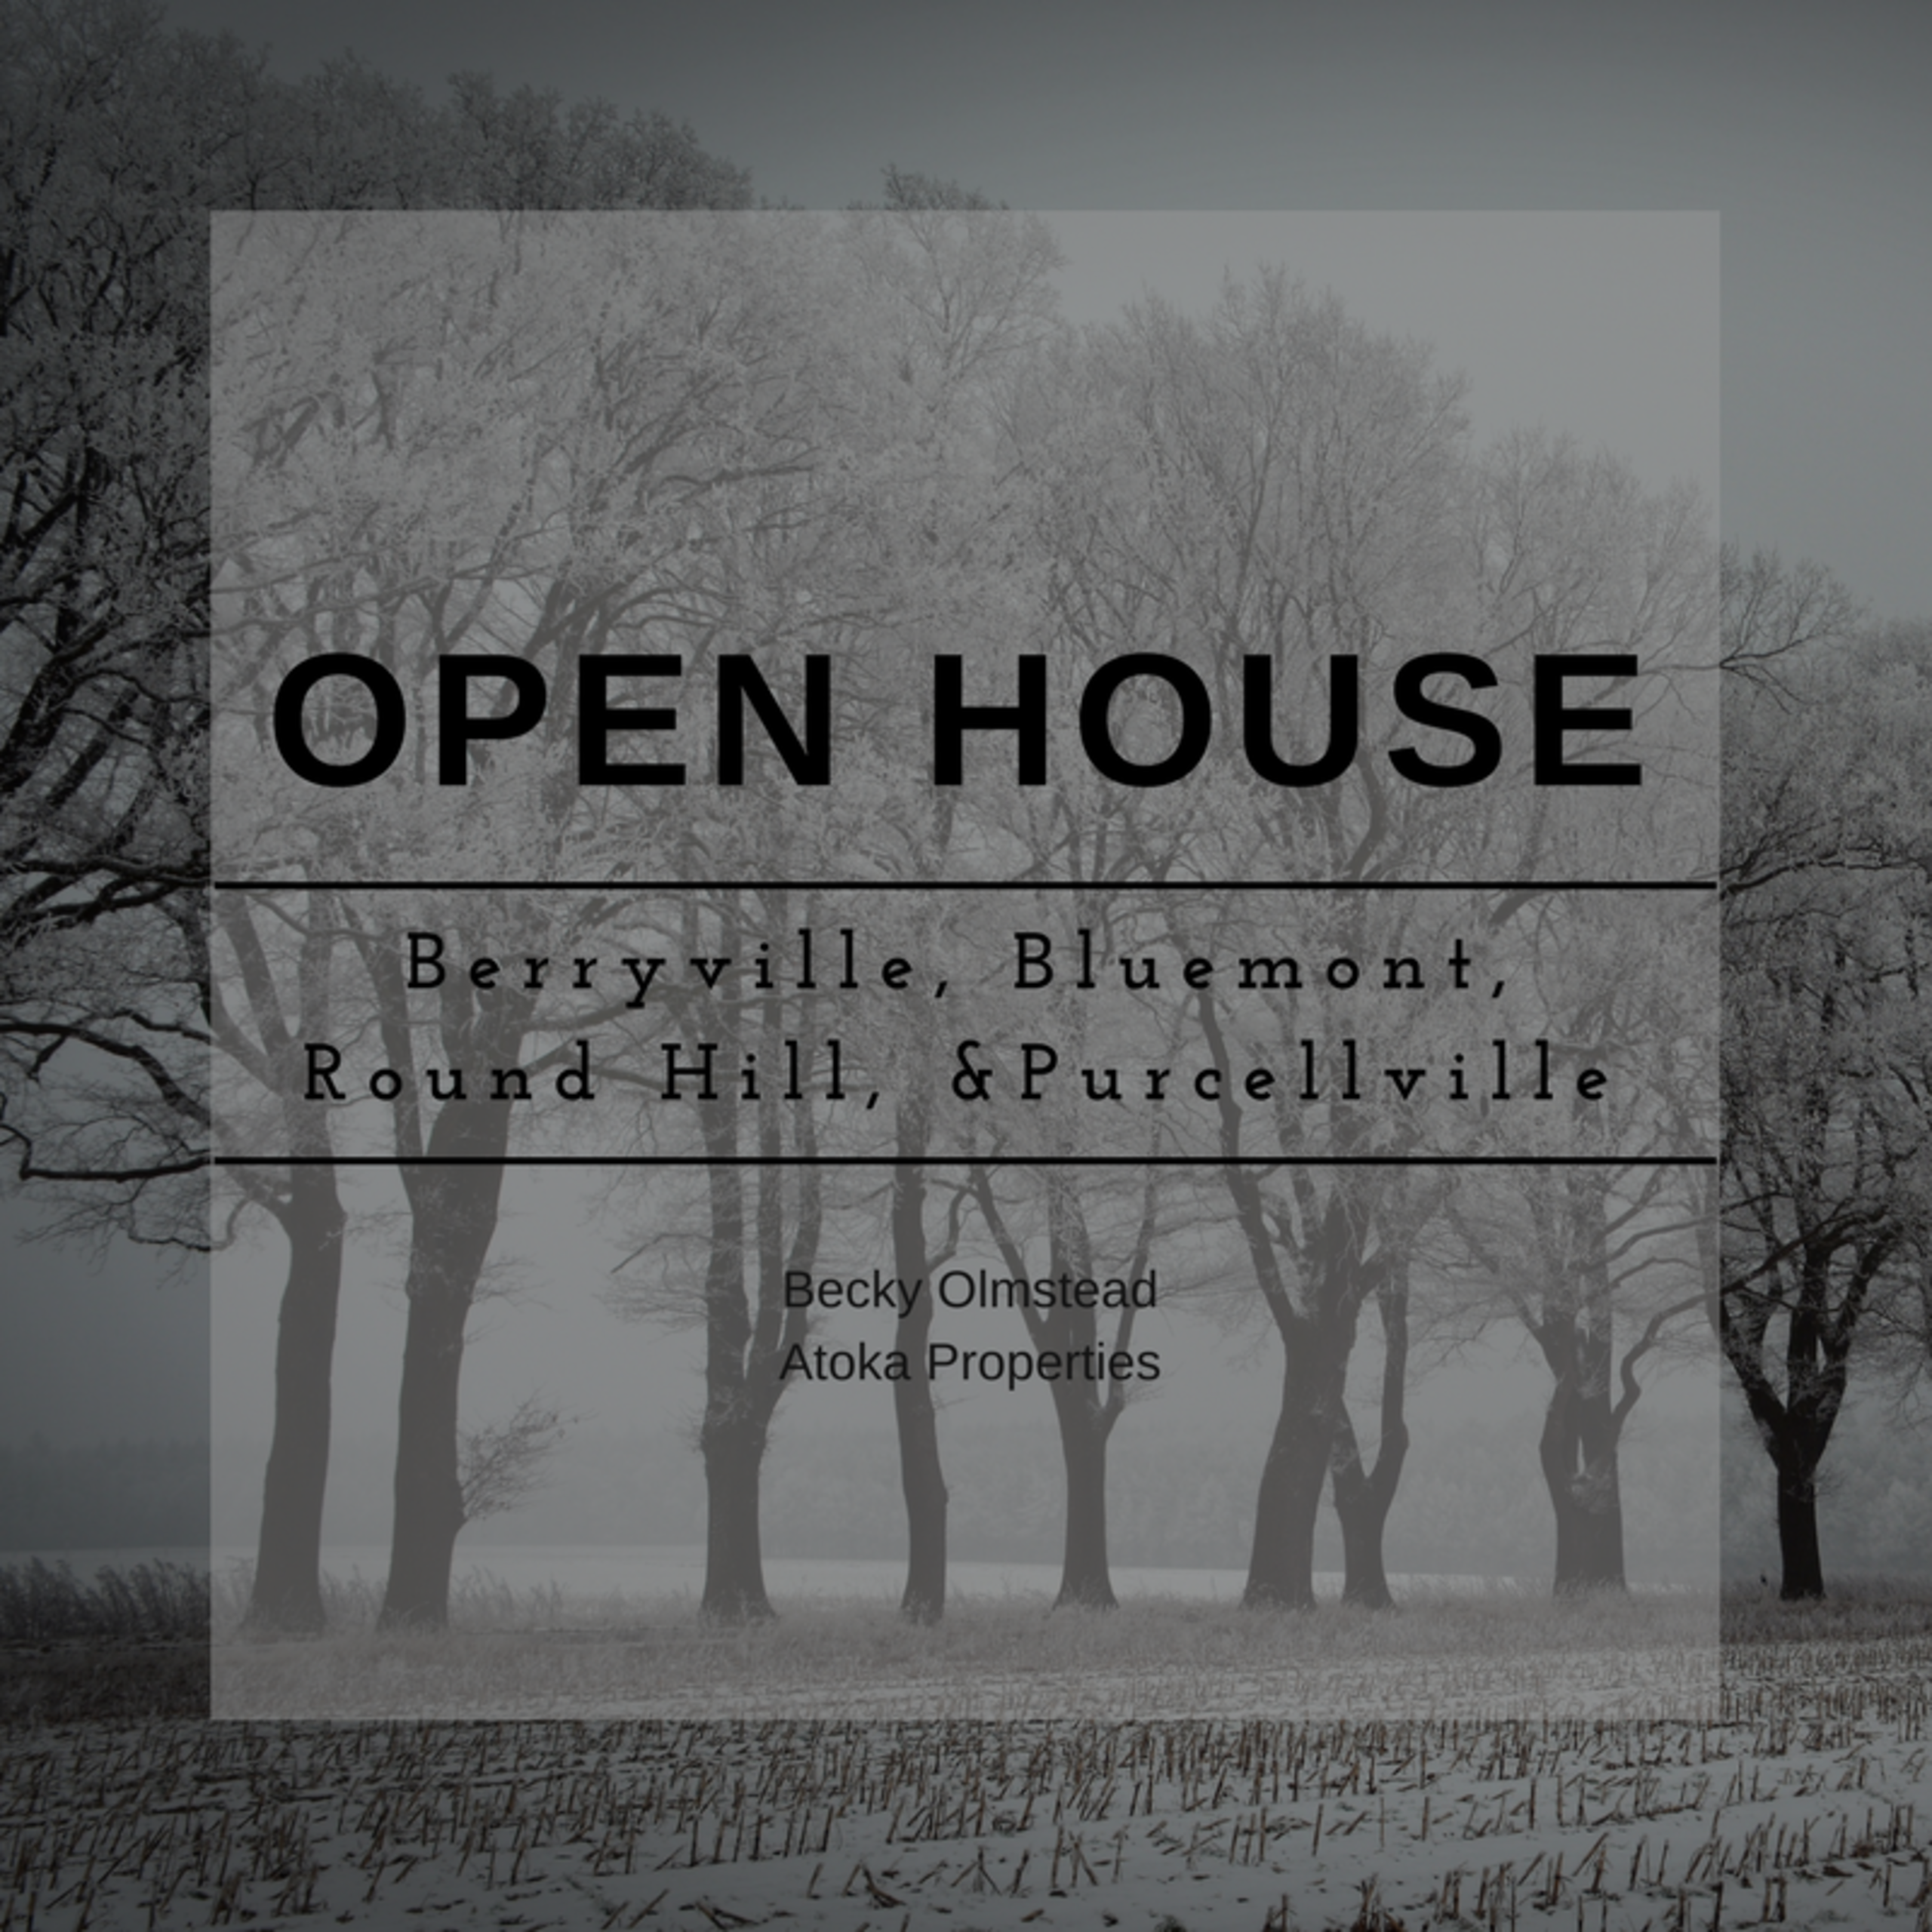 OPEN HOUSE LIST 01/13/18 – 01/14/18